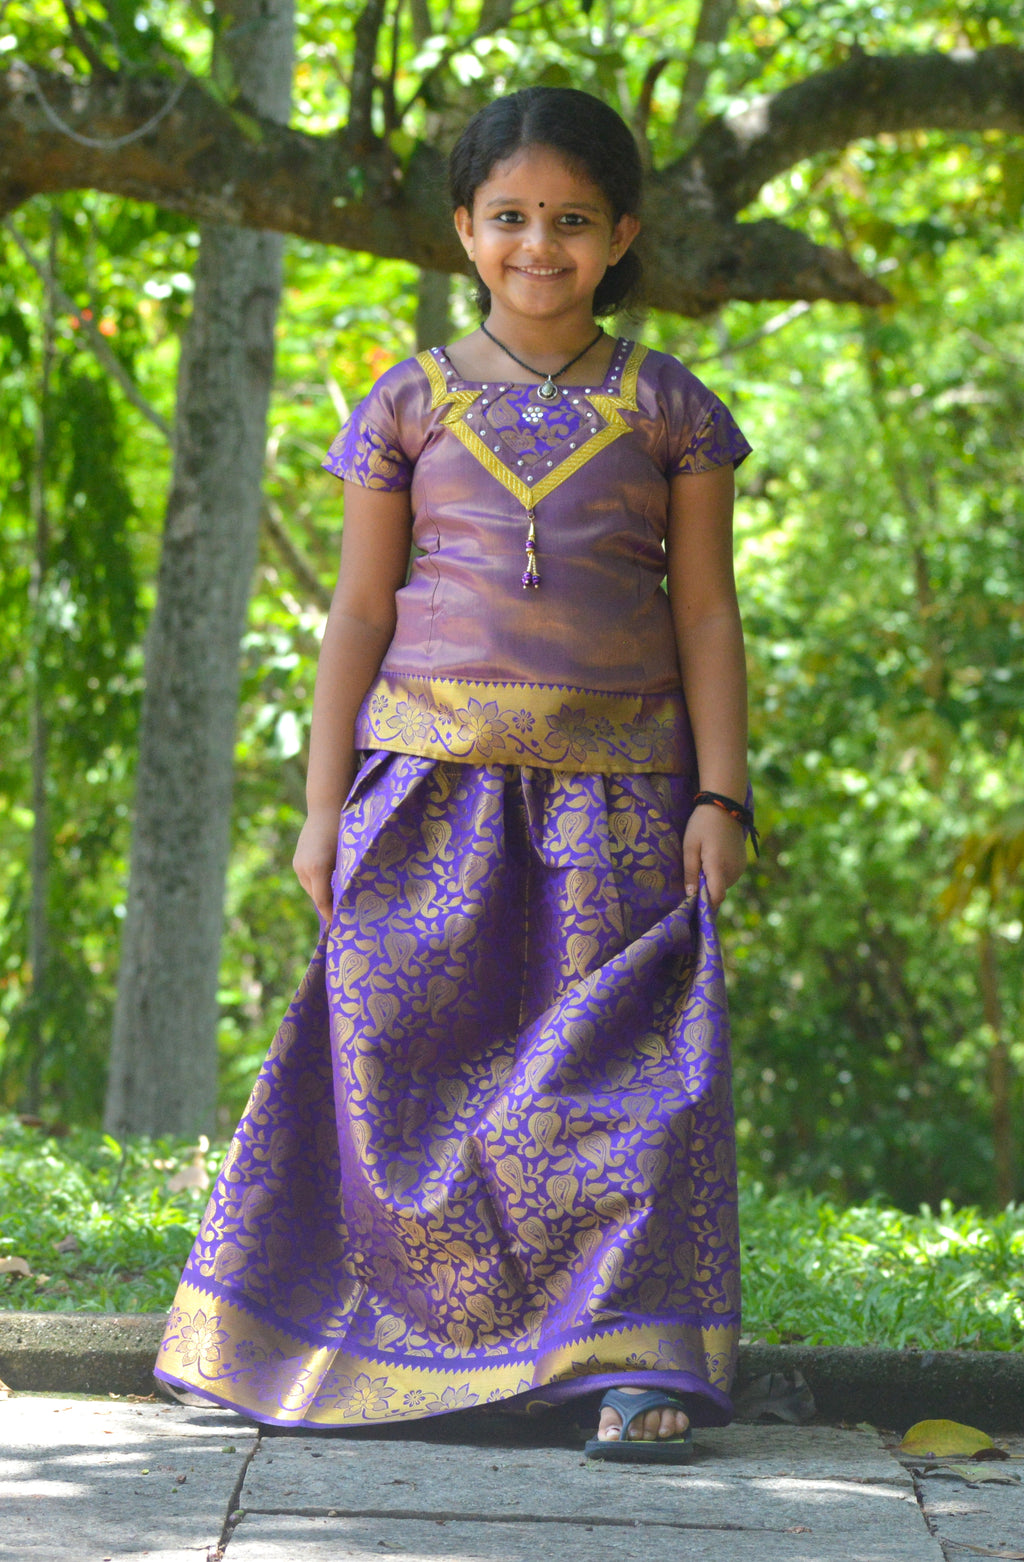 c2a55e16738a21 Southloom Violet Pattupavada and Blouse (Traditional Ethnic Skirt and Blouse  for Girls)